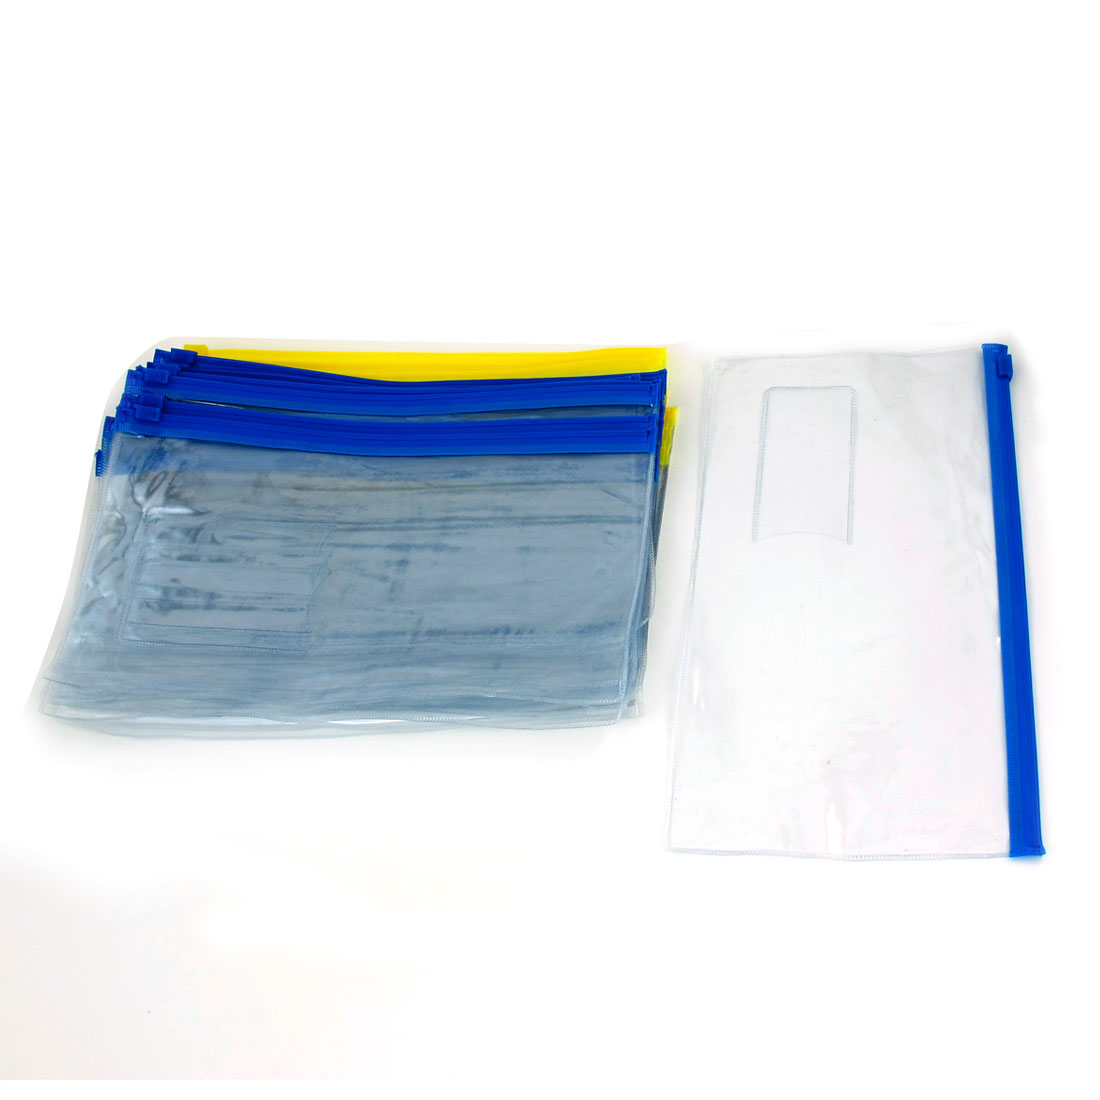 30 Pcs B6 Paper Zipper Closure Bag Pocket Pen Files Folders Yellow Blue Clear